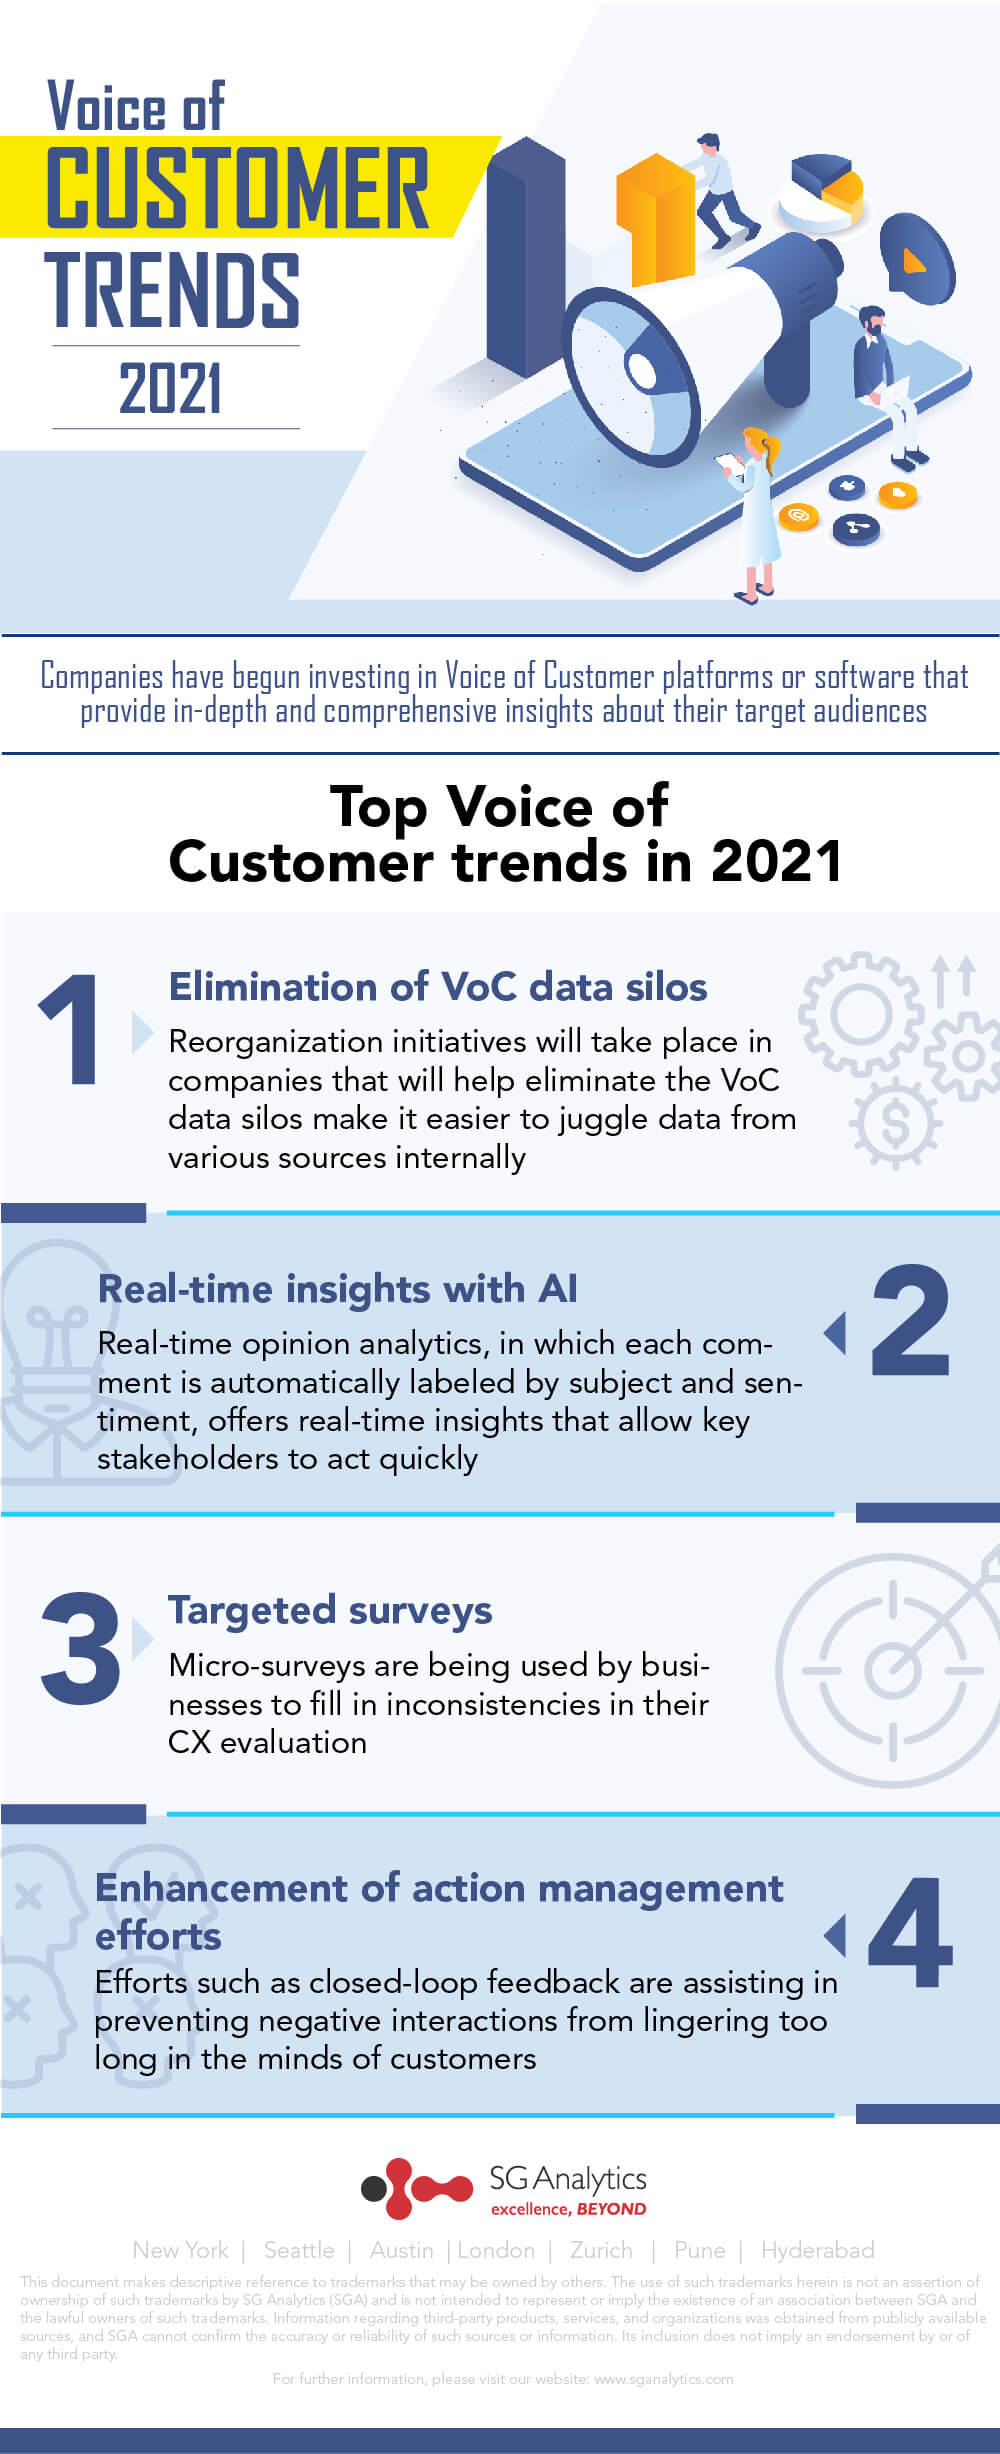 Over 50% US customers prefer word-of-mouth – Voice of Customer trends 2021